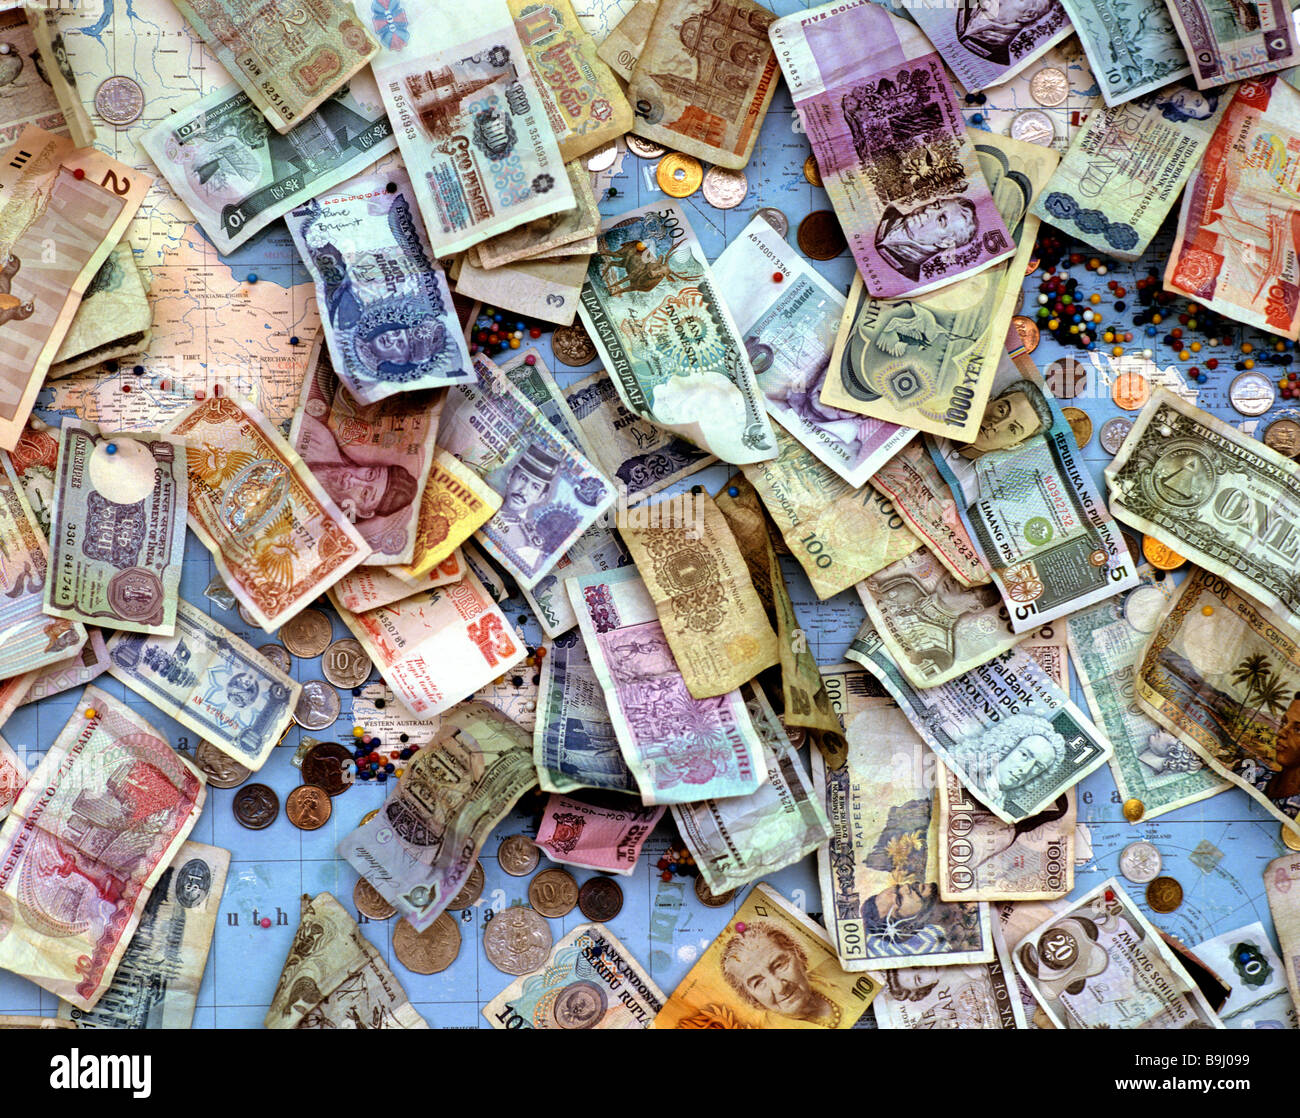 Old banknotes and coins, international currencies, global currencies - Stock Image